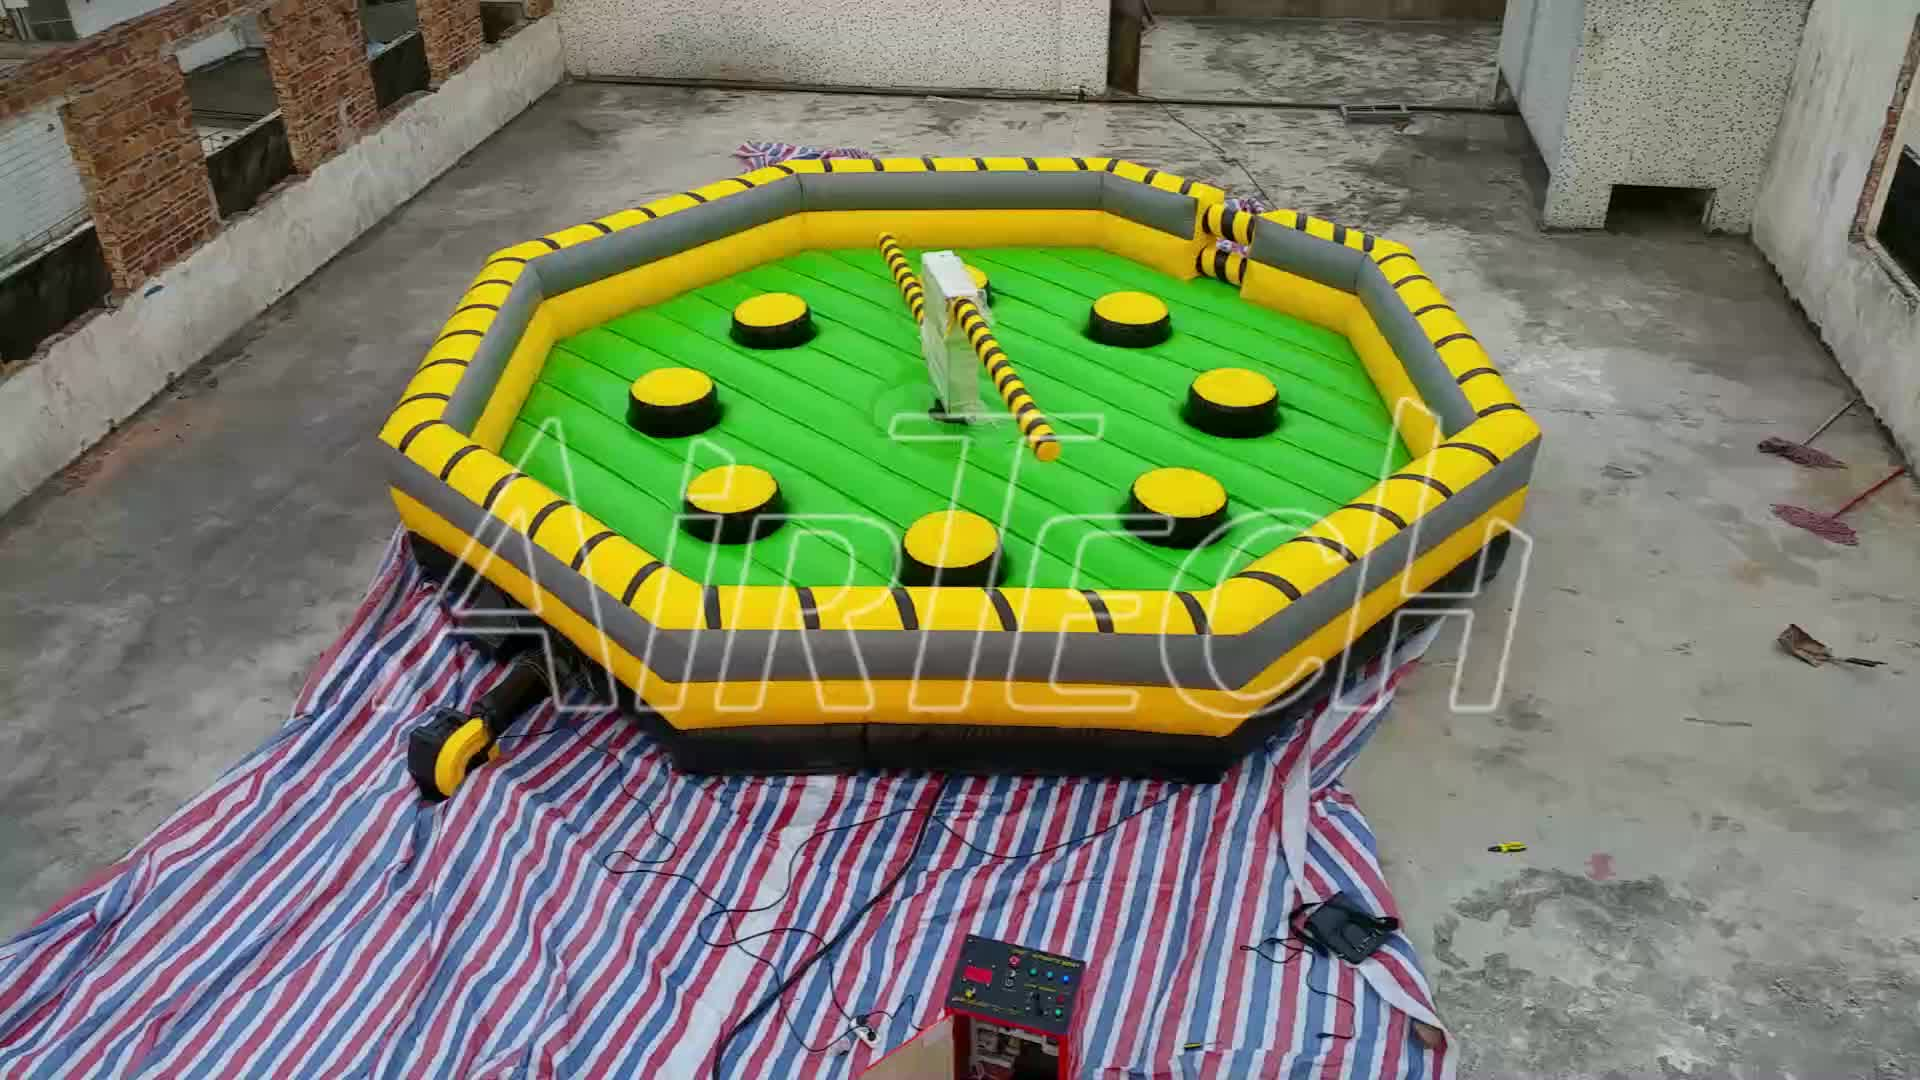 Hot game inflatable meltdown sale, inflatable wipeout course for sale, mechanical meltdown